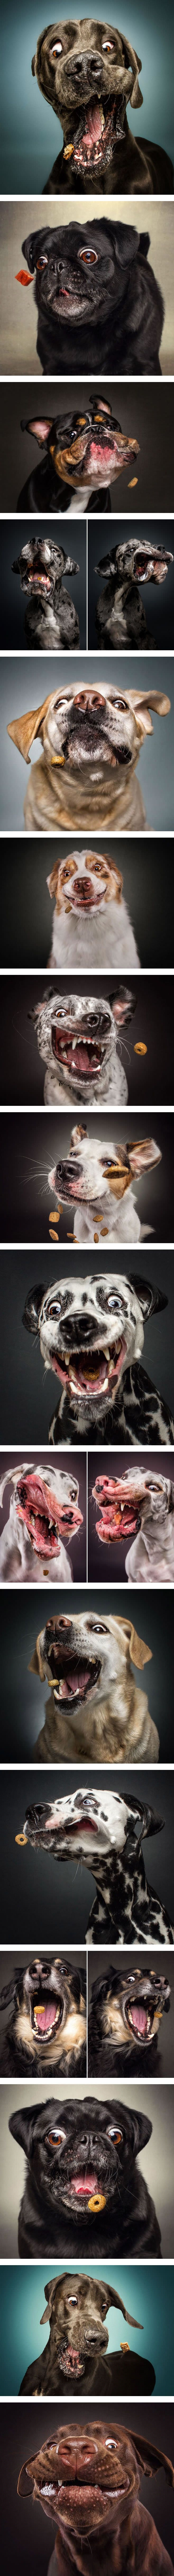 Expressions of Dogs Catching Treats In Mid-Air (By Christian Vieler-Kircher) - 9GAG